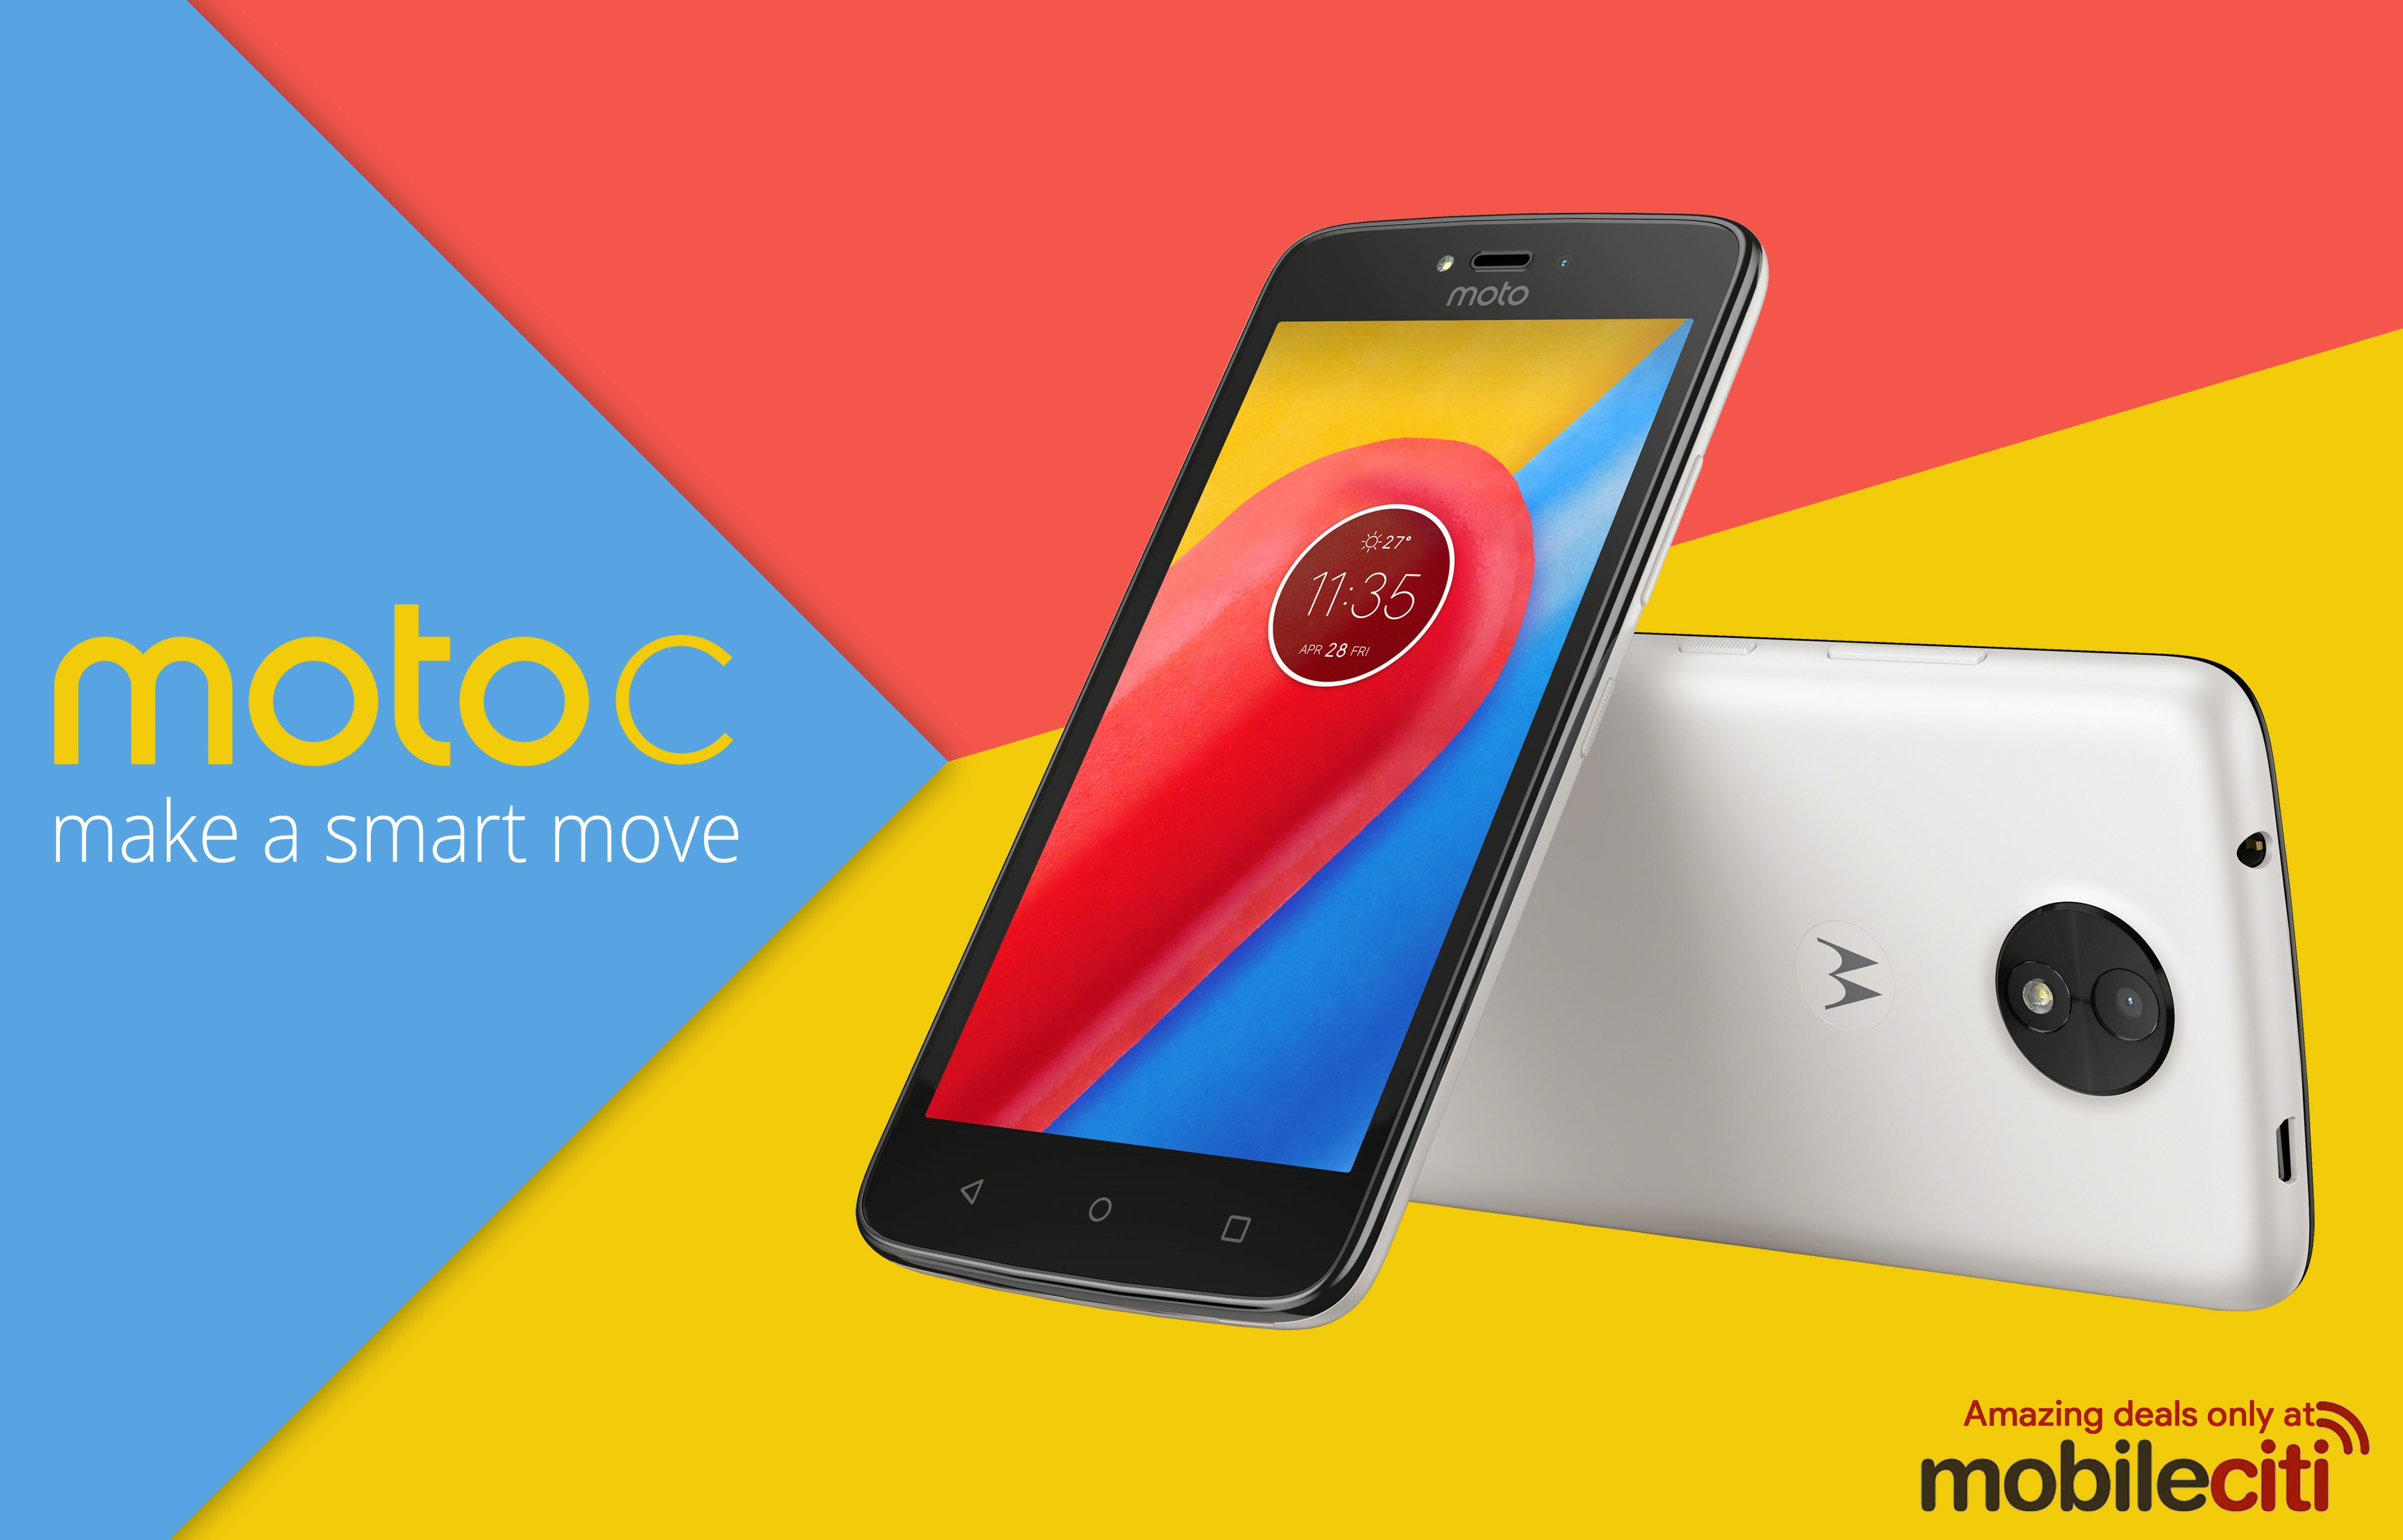 Motorola Moto C Review - A cheap 4G phone with all the basics